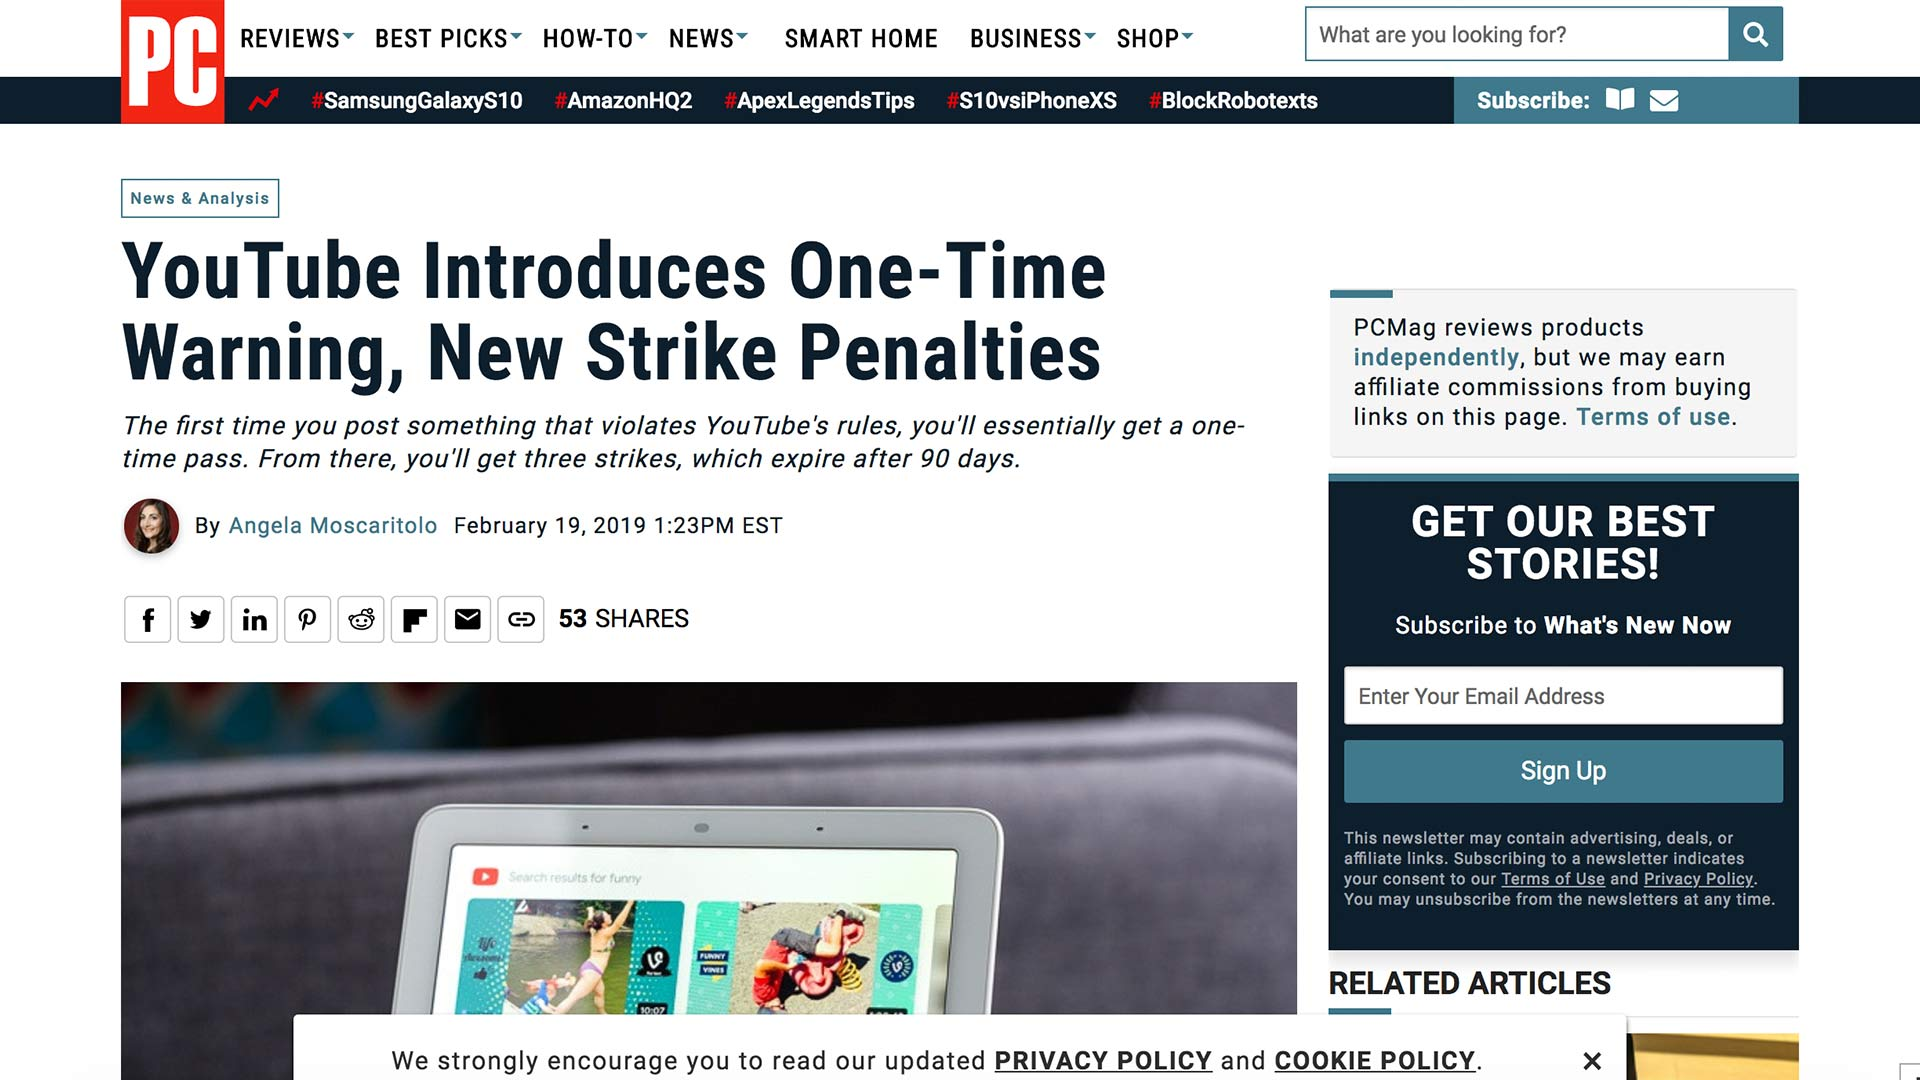 Fairness Rocks News YouTube Introduces One-Time Warning, New Strike Penalties